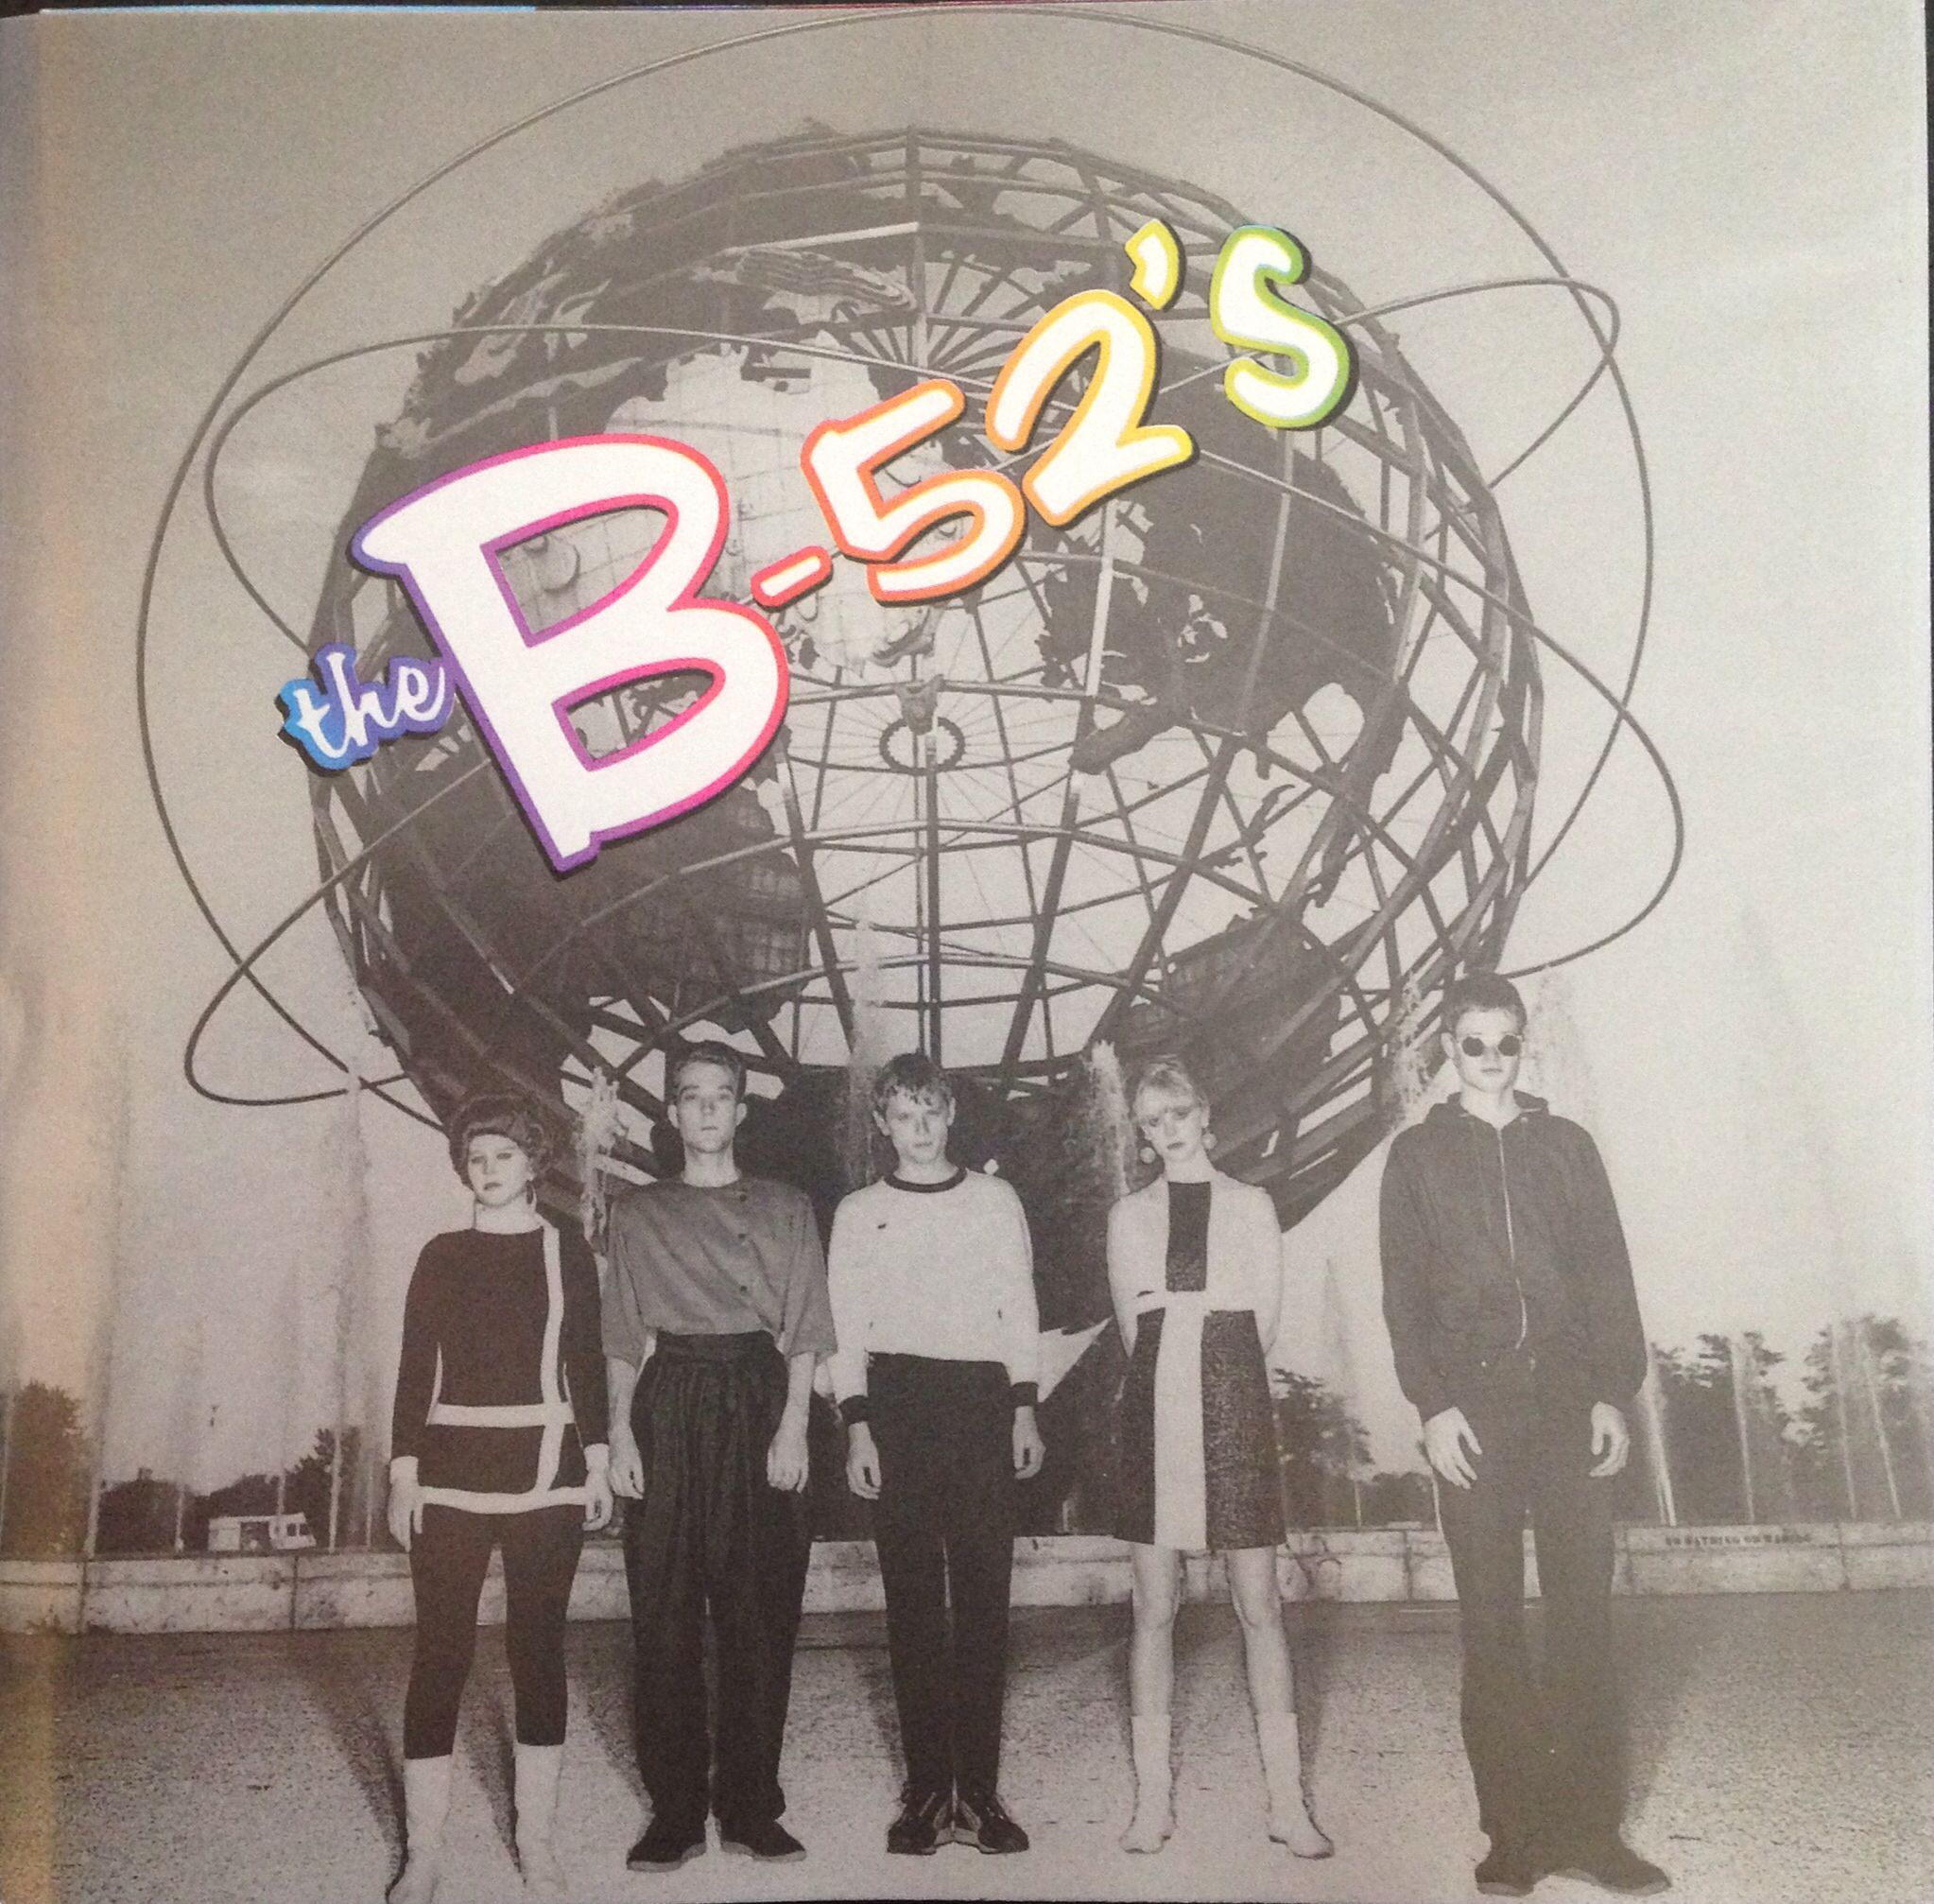 Time Capsule Quotes: The B-52's - Time Capsule